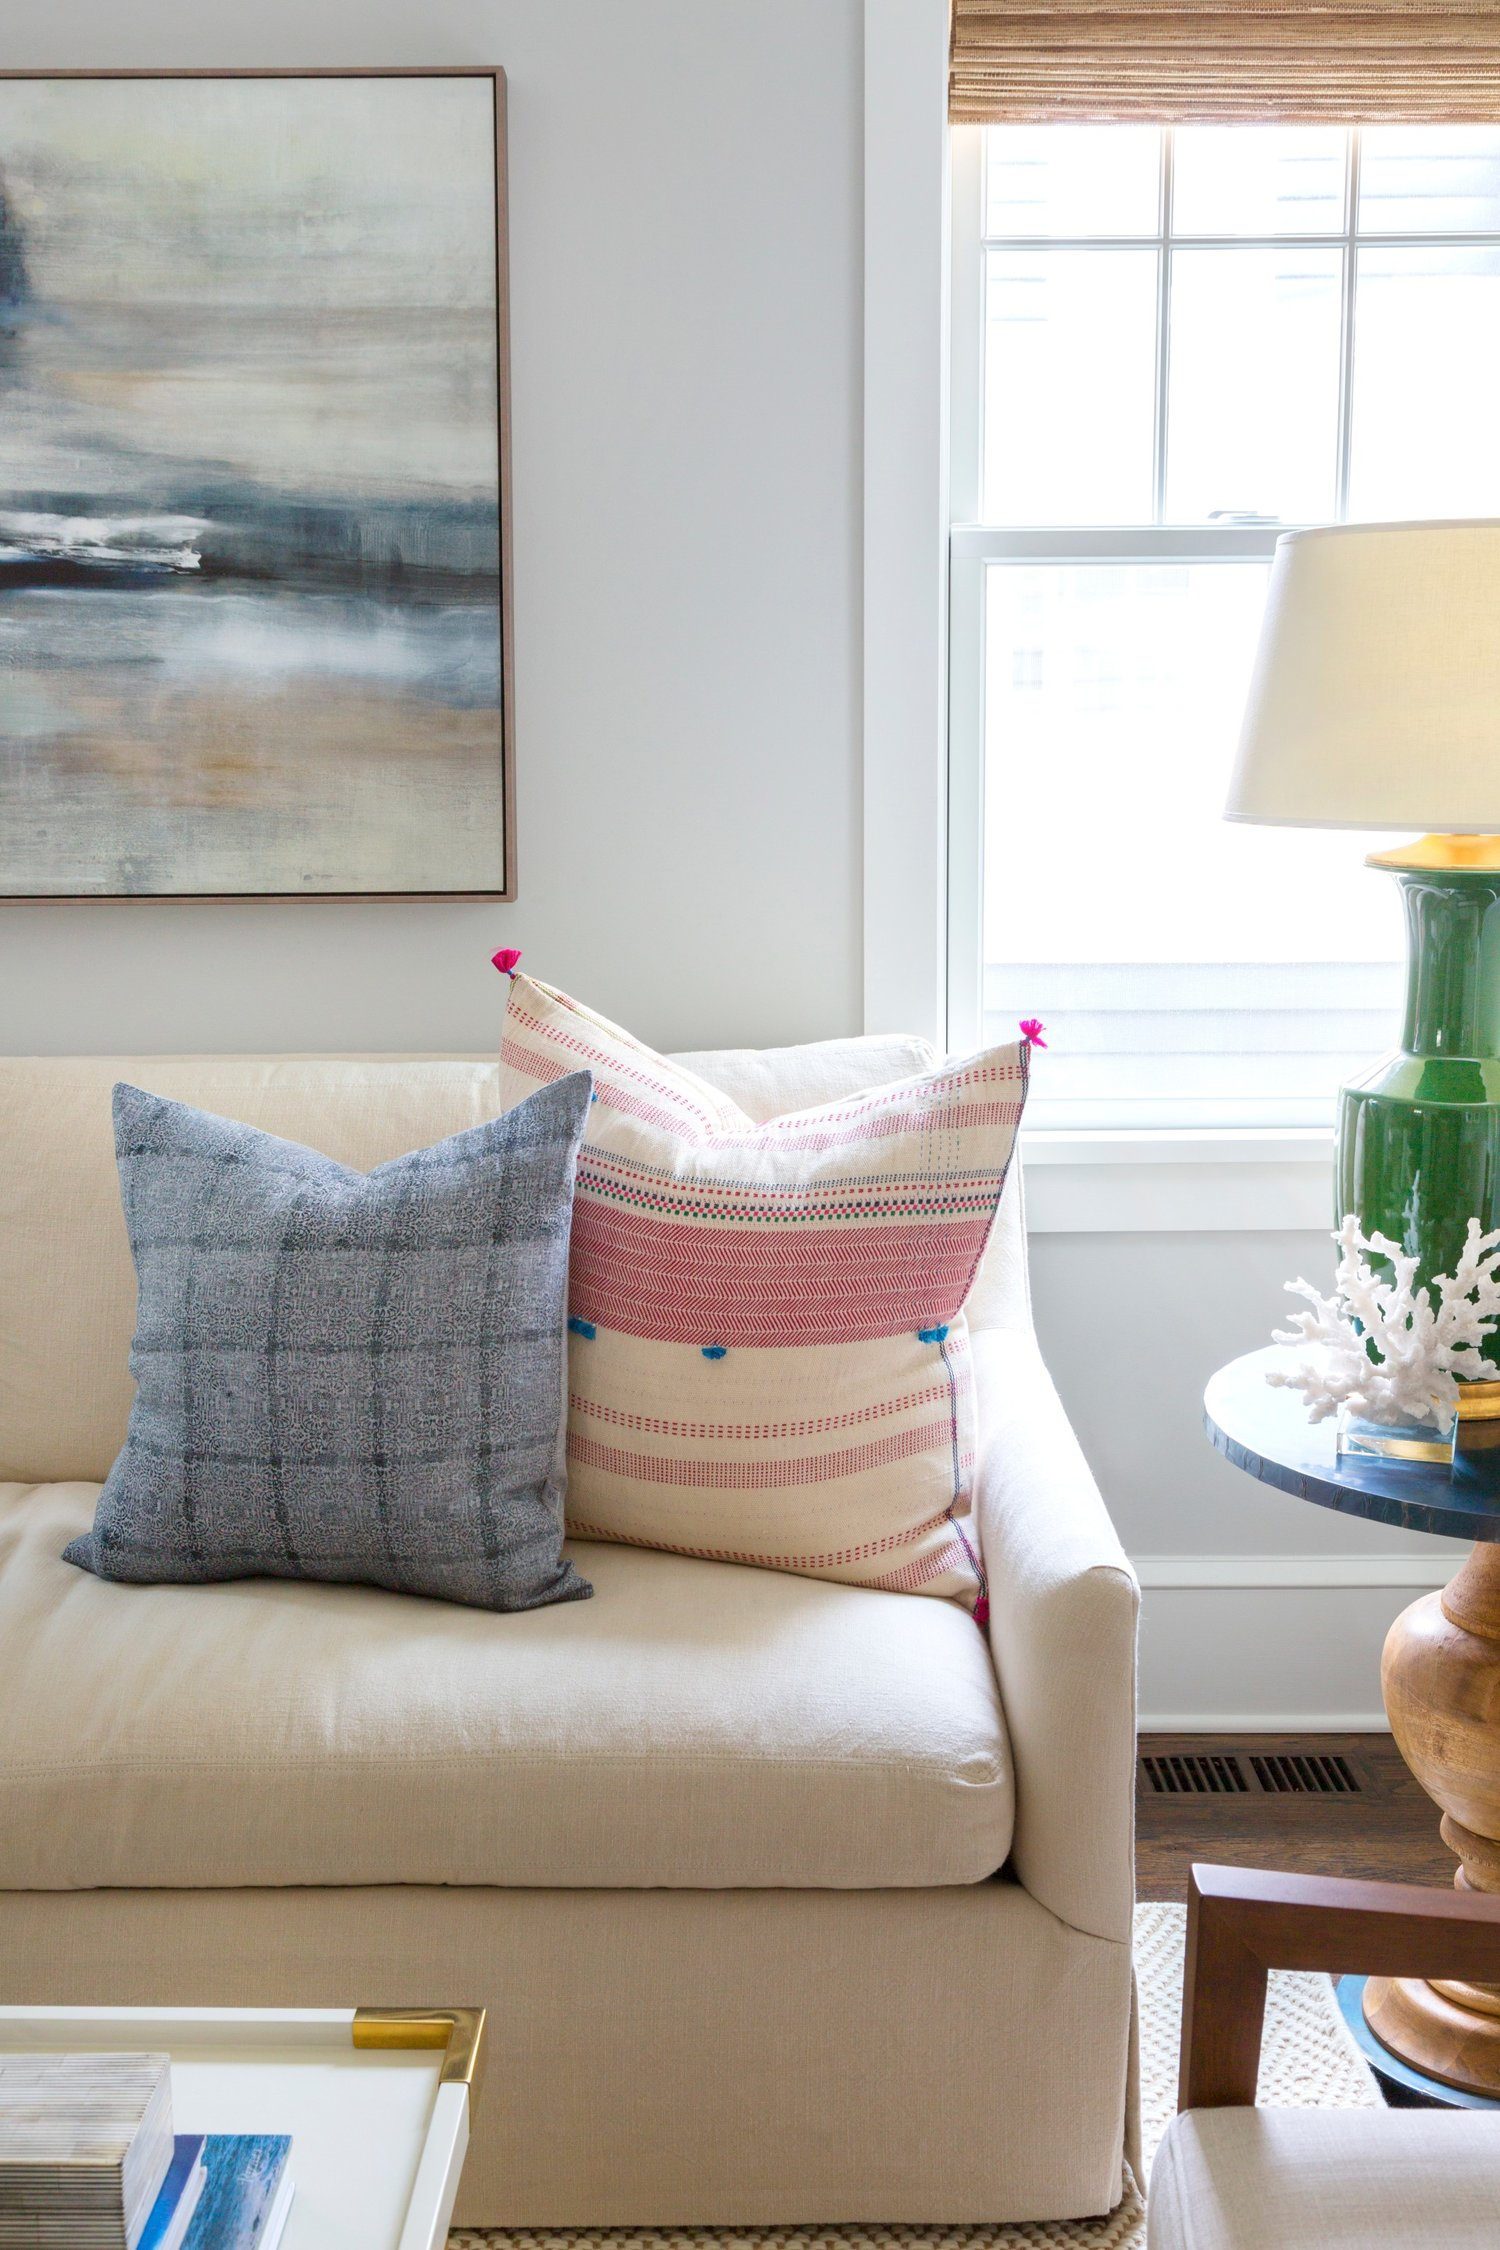 White couch with decorative pillows